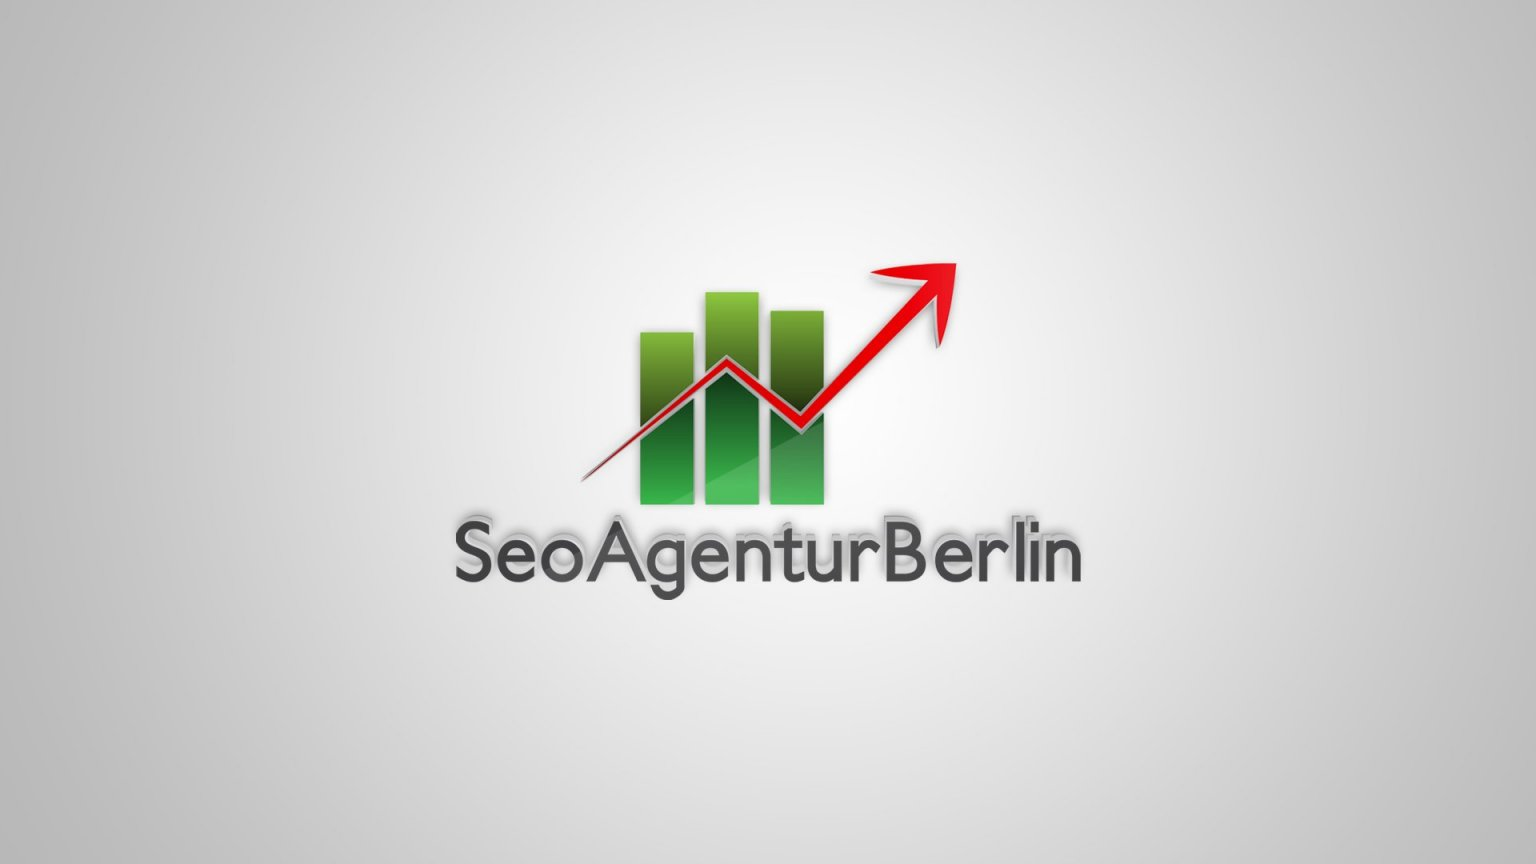 Seo Agentur Berlin | Max Always